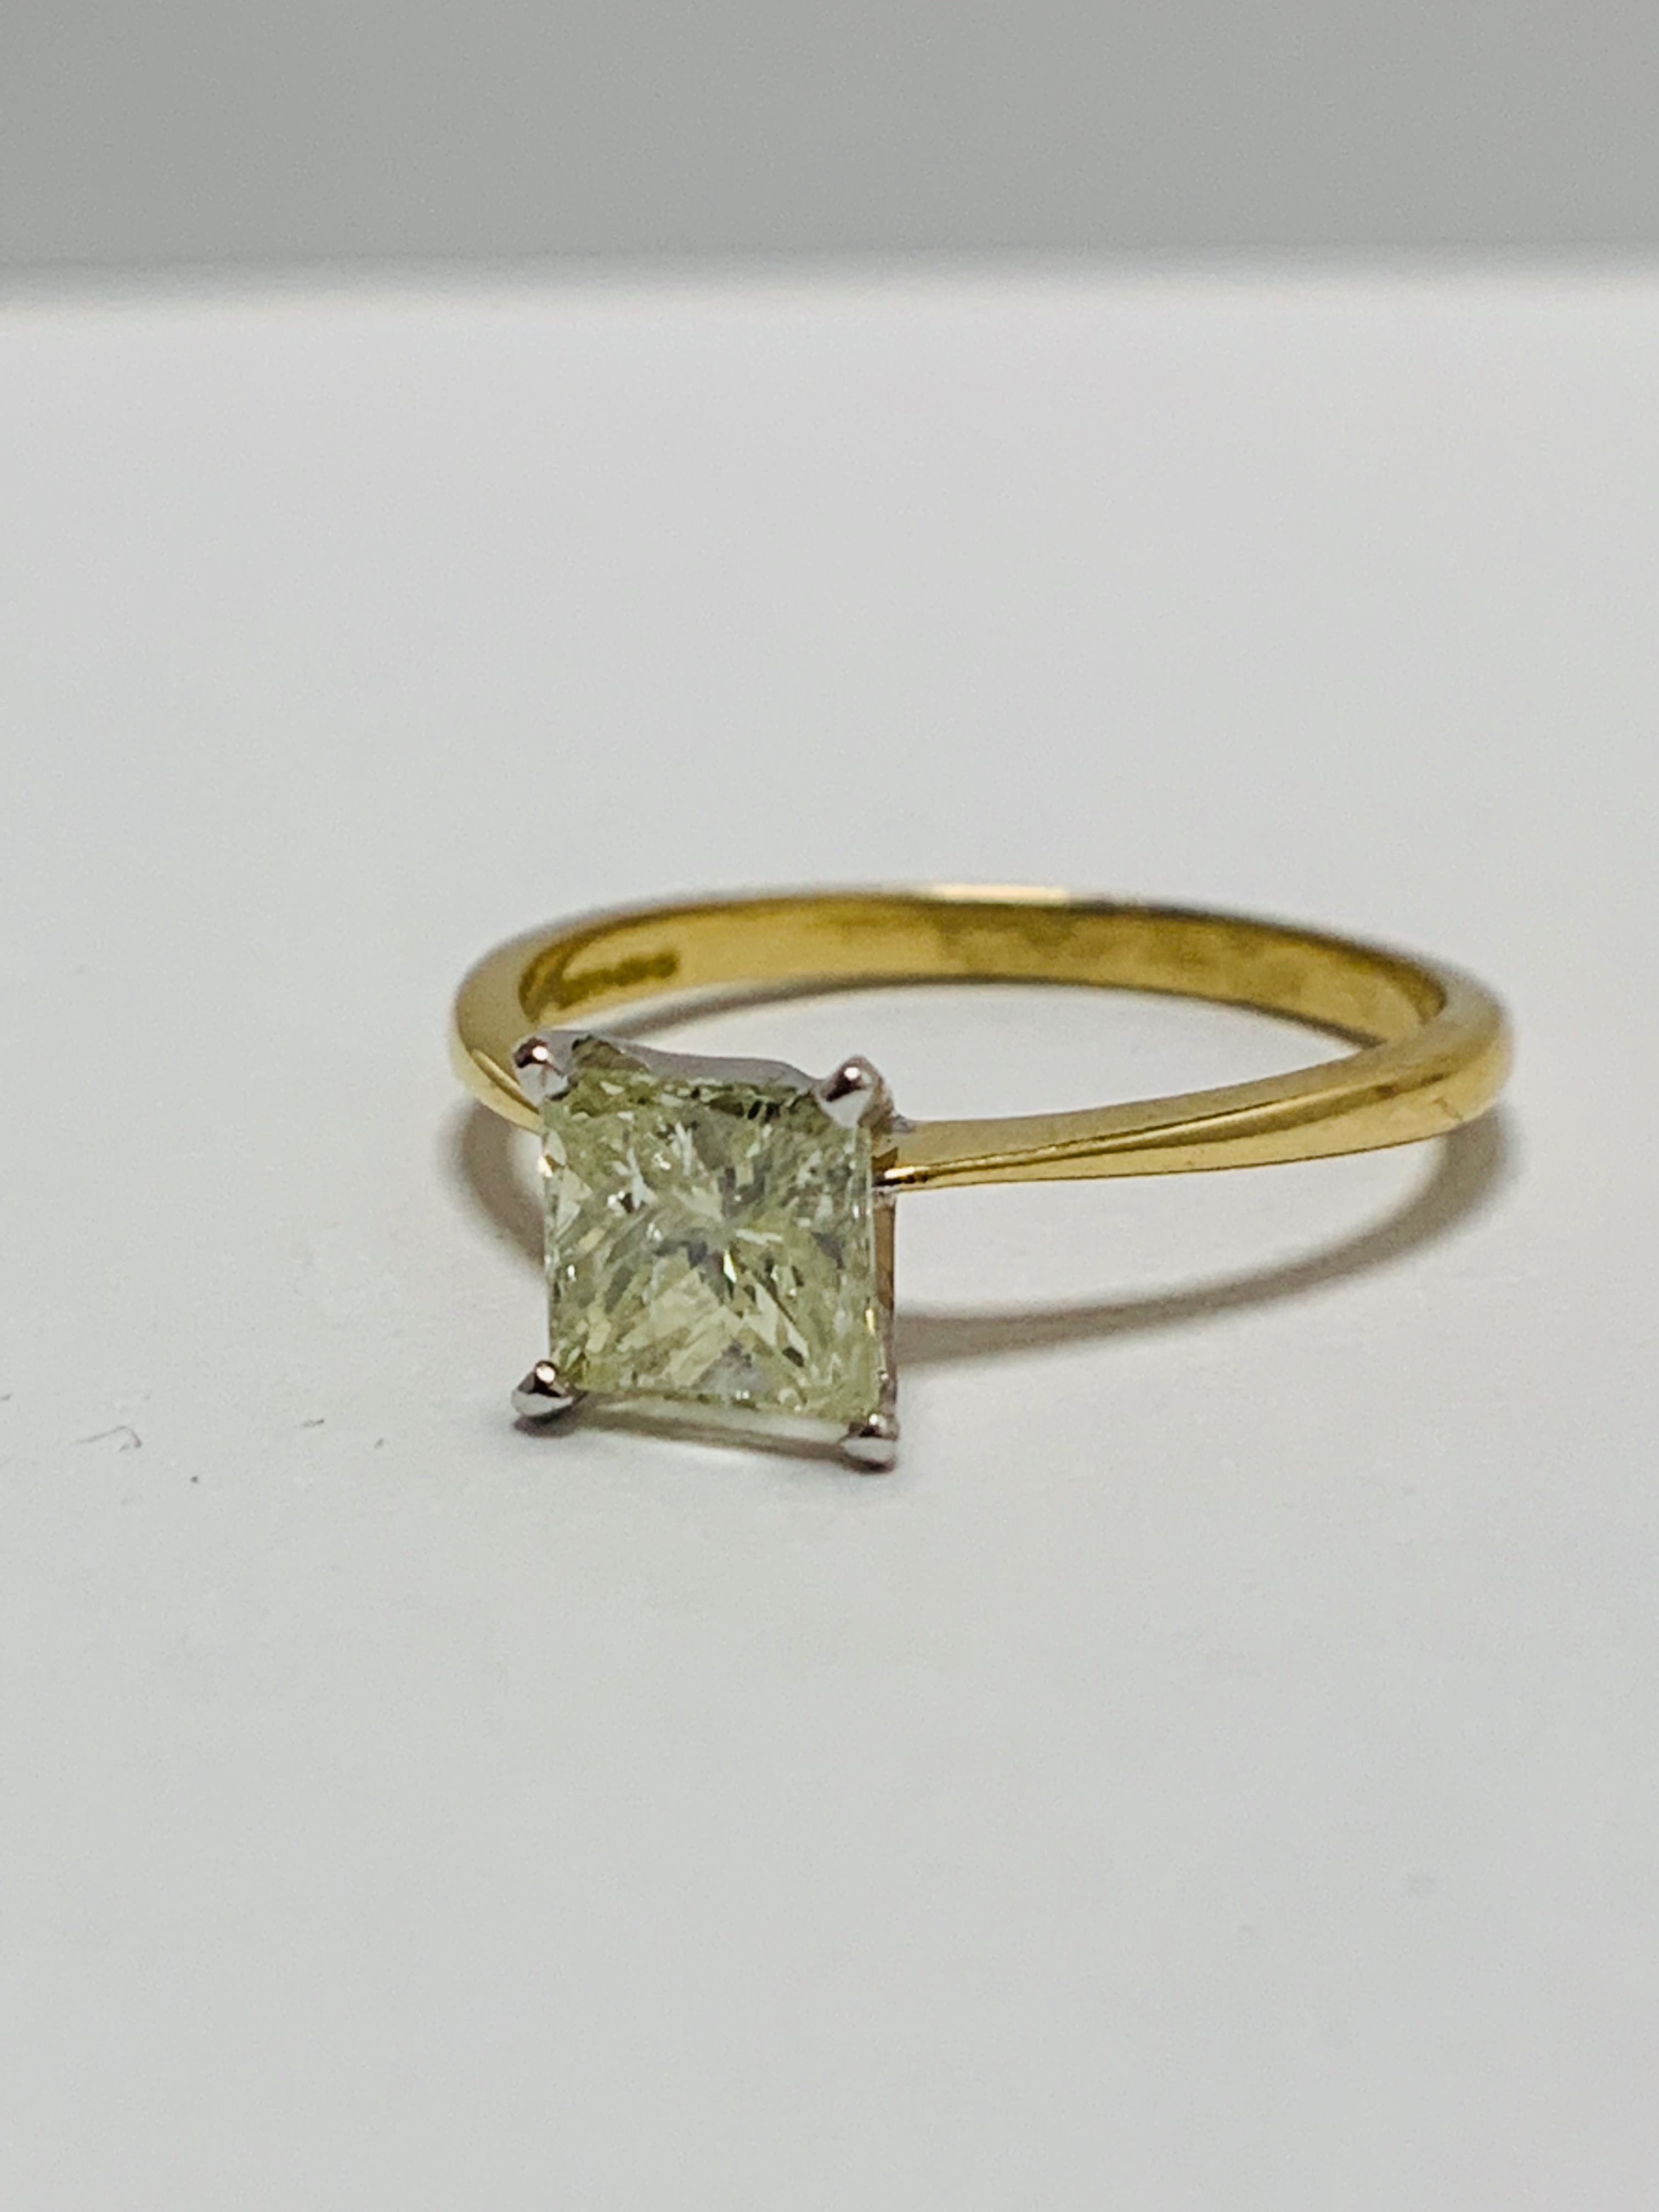 18ct Princess Cut natural diamond solitaire ring - Image 2 of 10